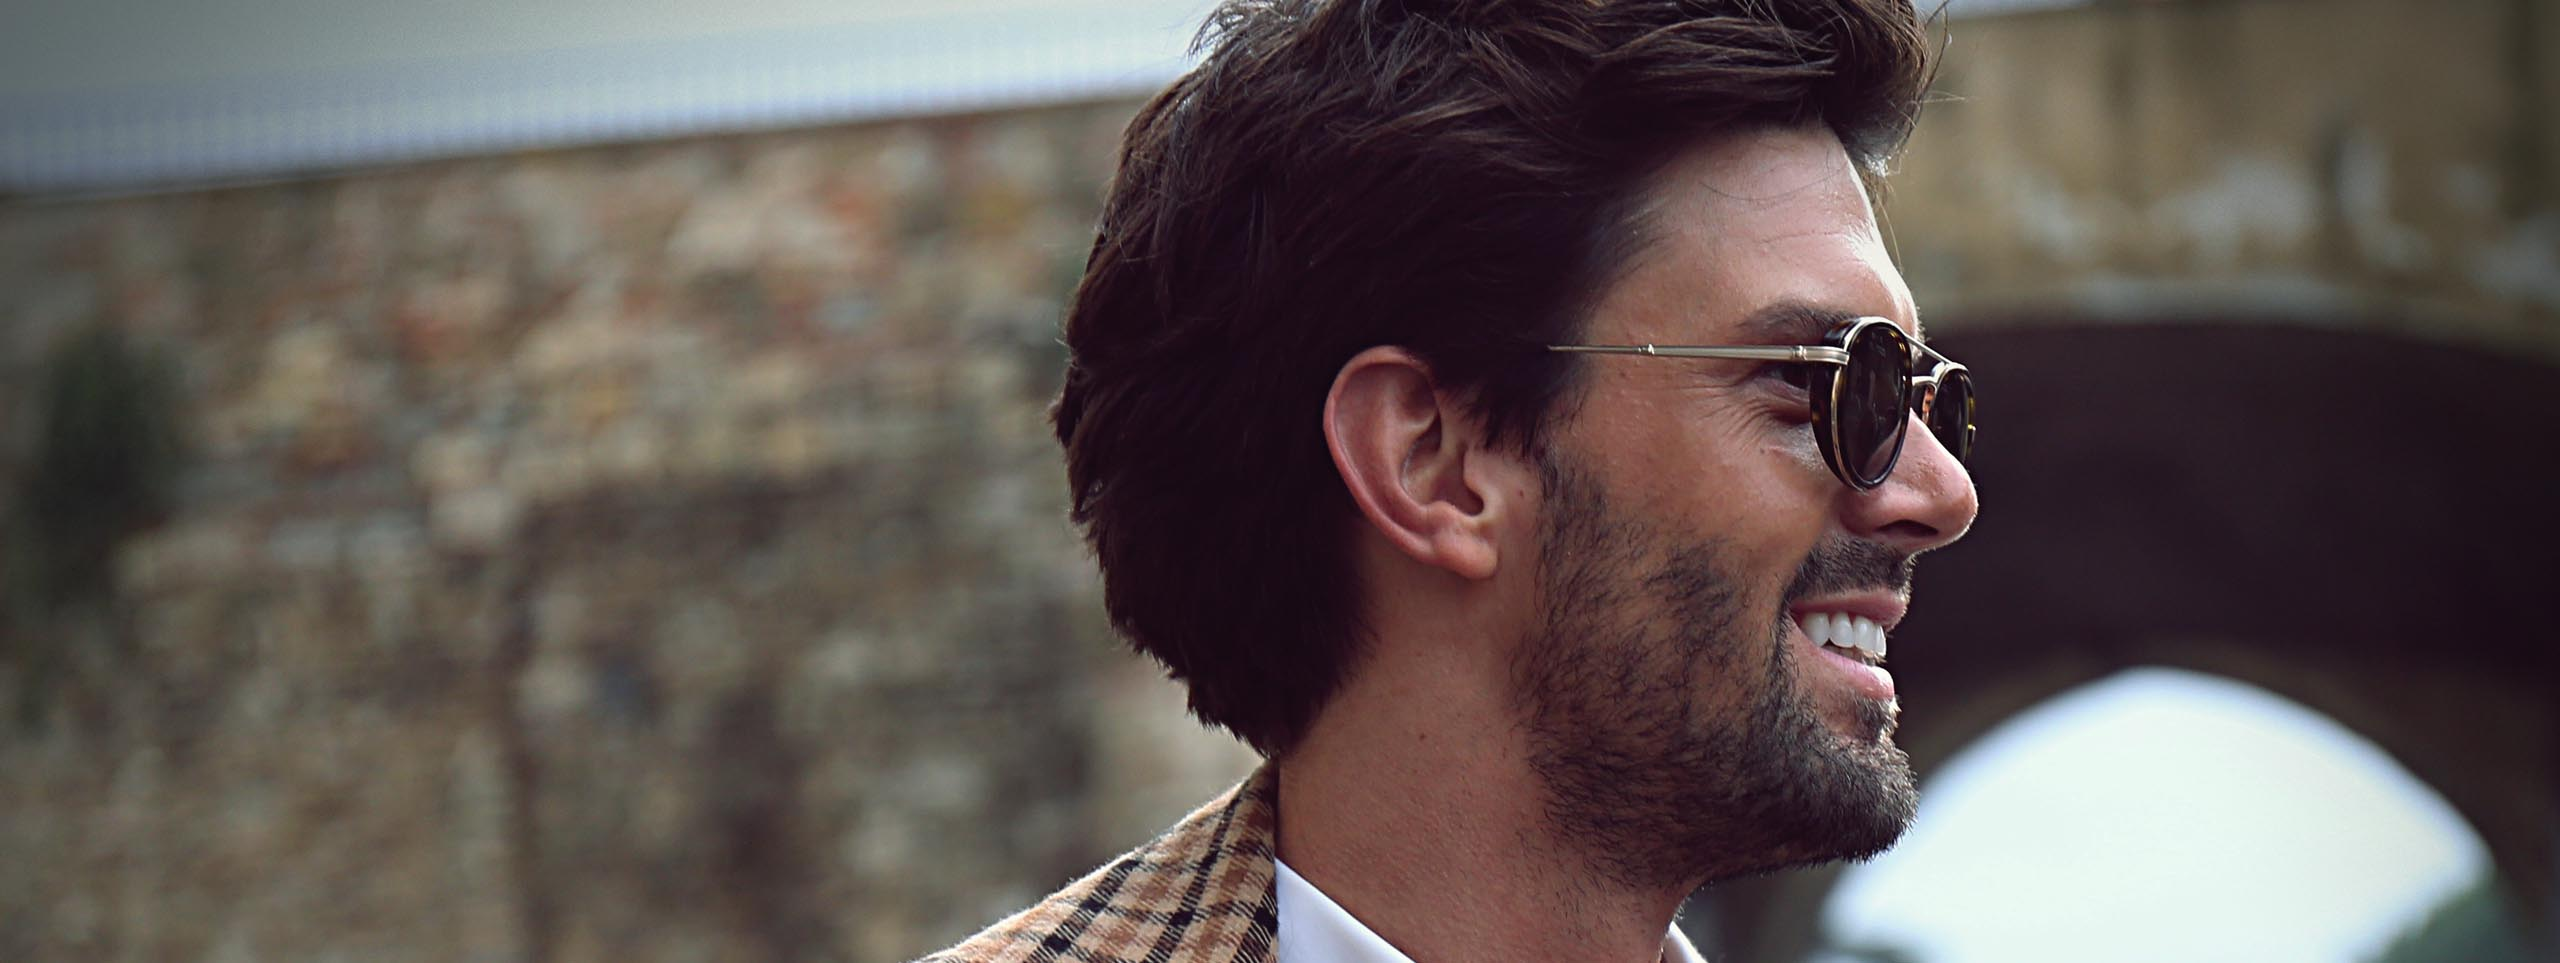 2560x963_man-with-full-beard-and-glasses